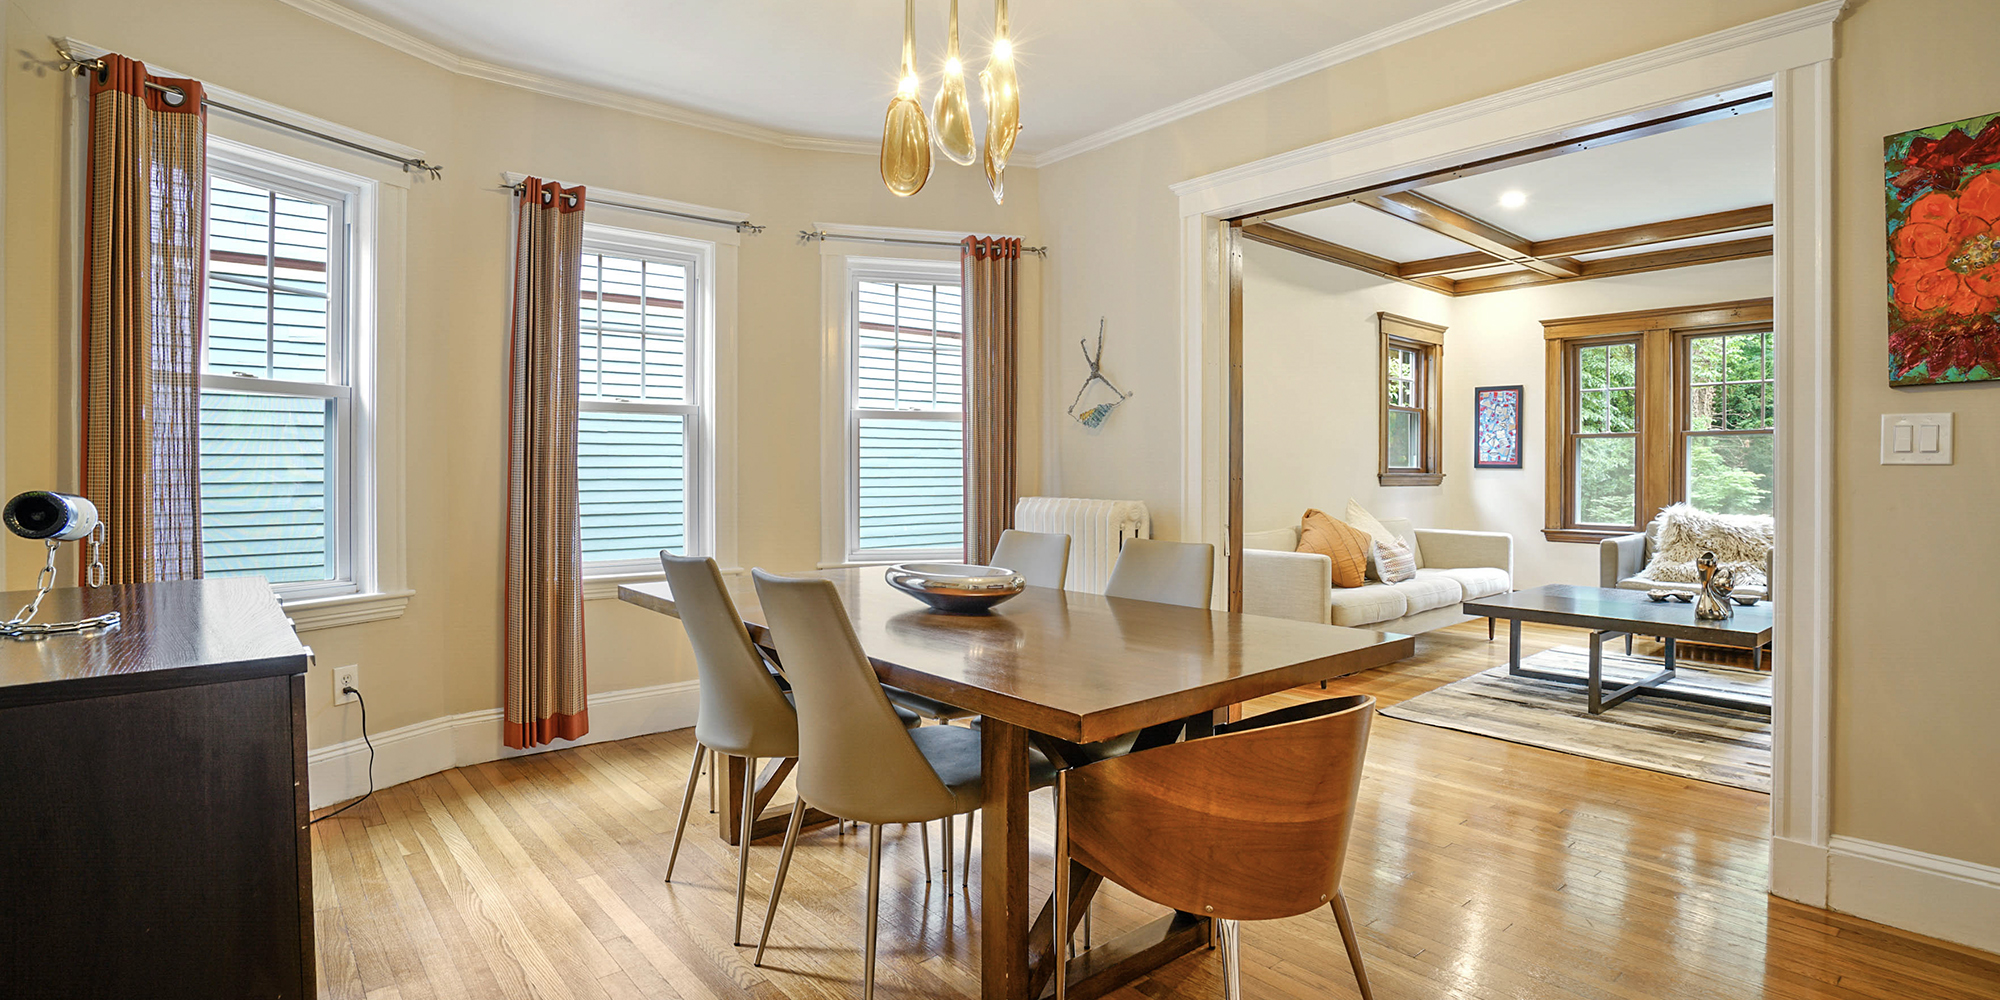 This Exquisite Coolidge Corner Two-Bedroom Condo Comes with 2 Porches and 3 Parking Spaces - $1,050,000